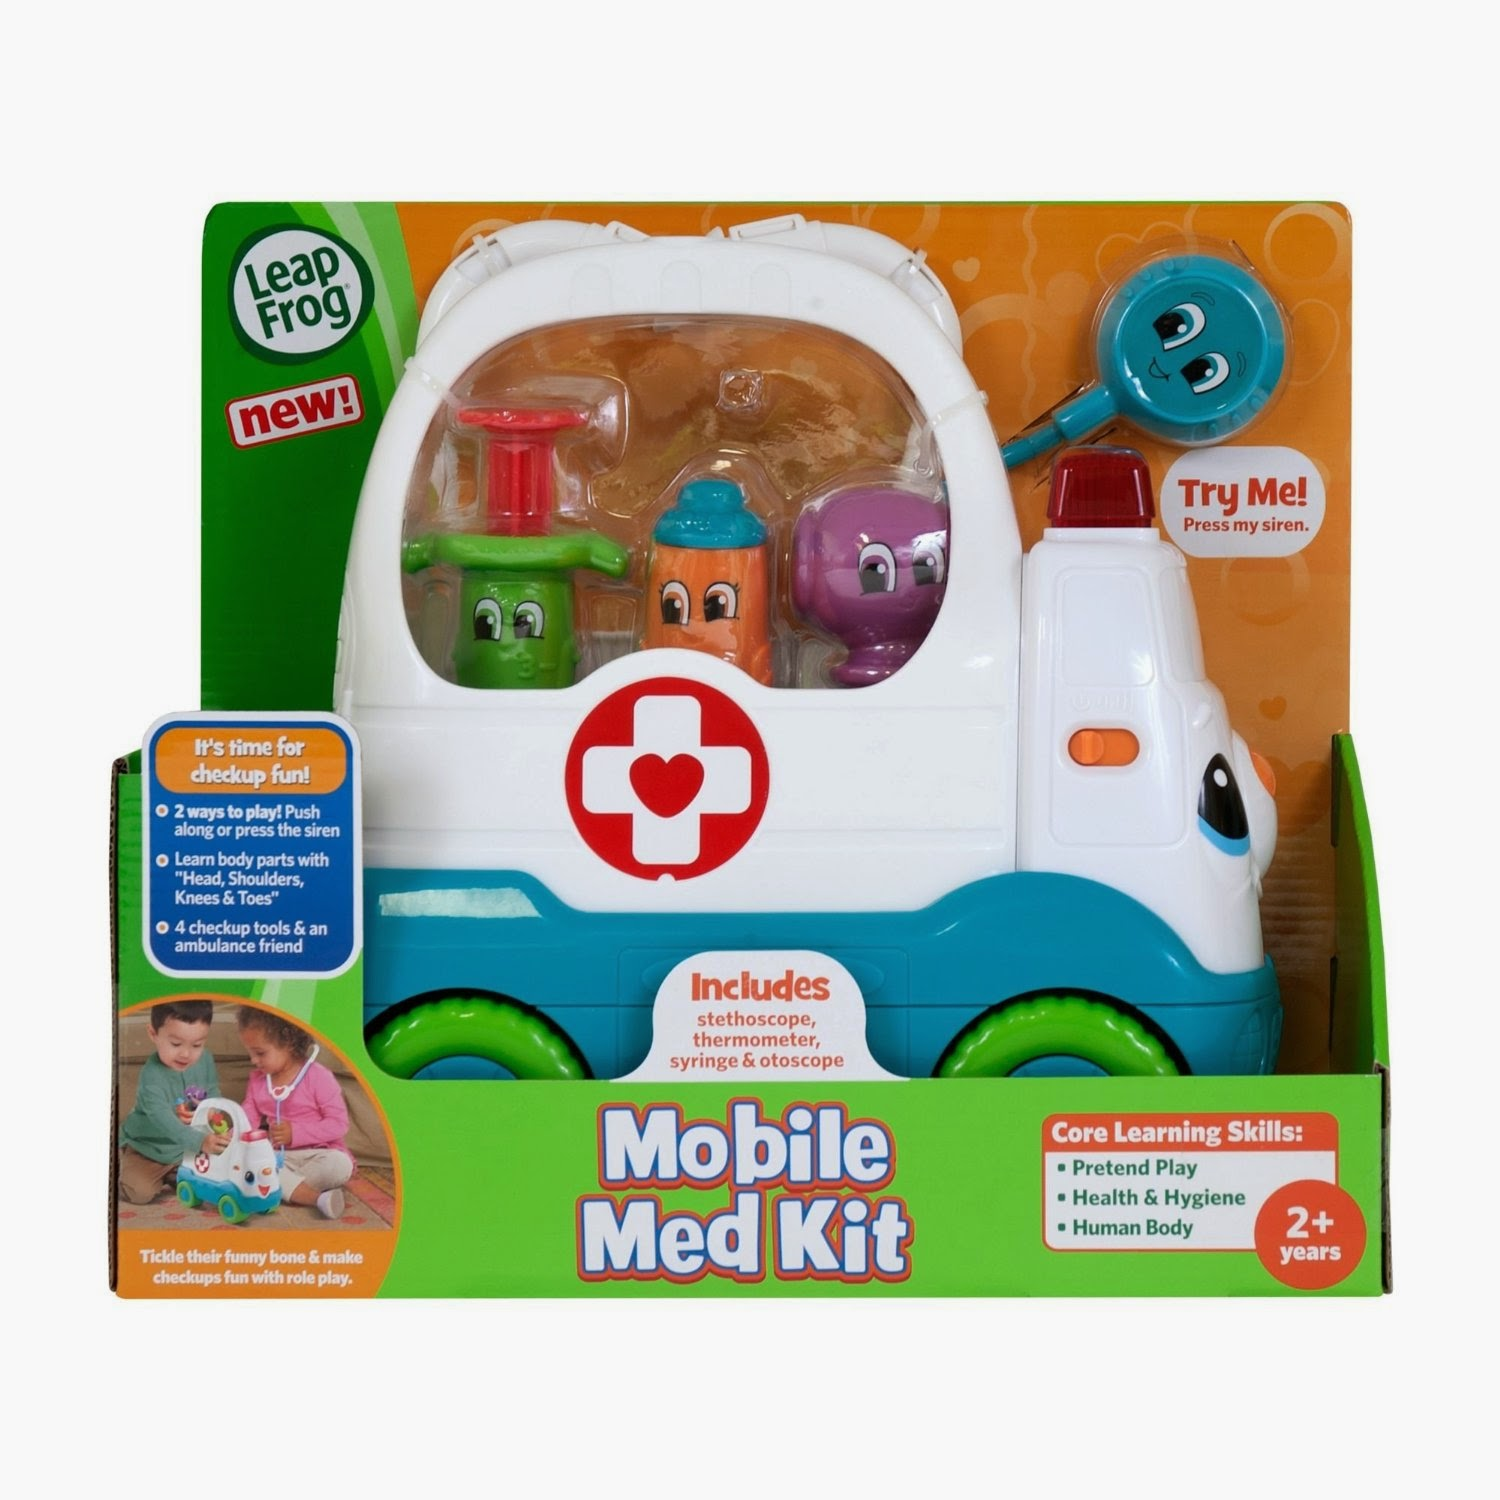 LeapFrog Mobile Medical Kit